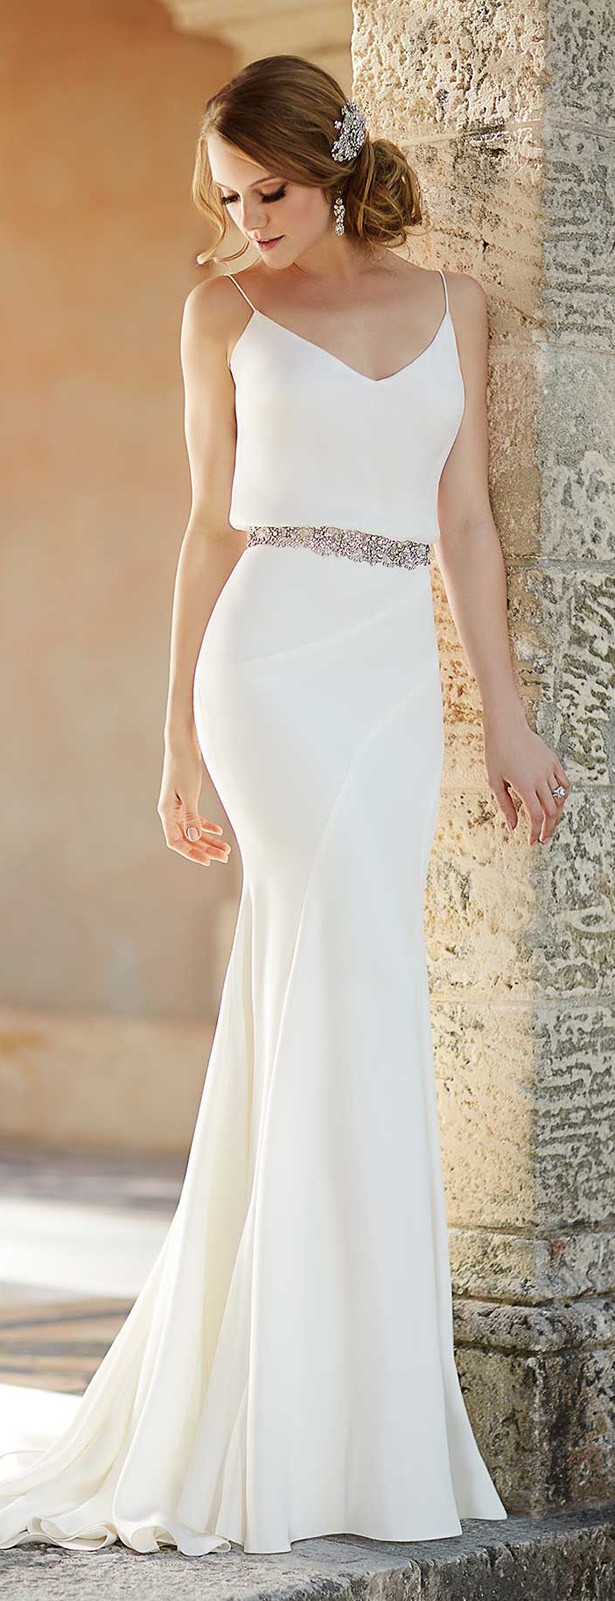 Best Simple Wedding Gown